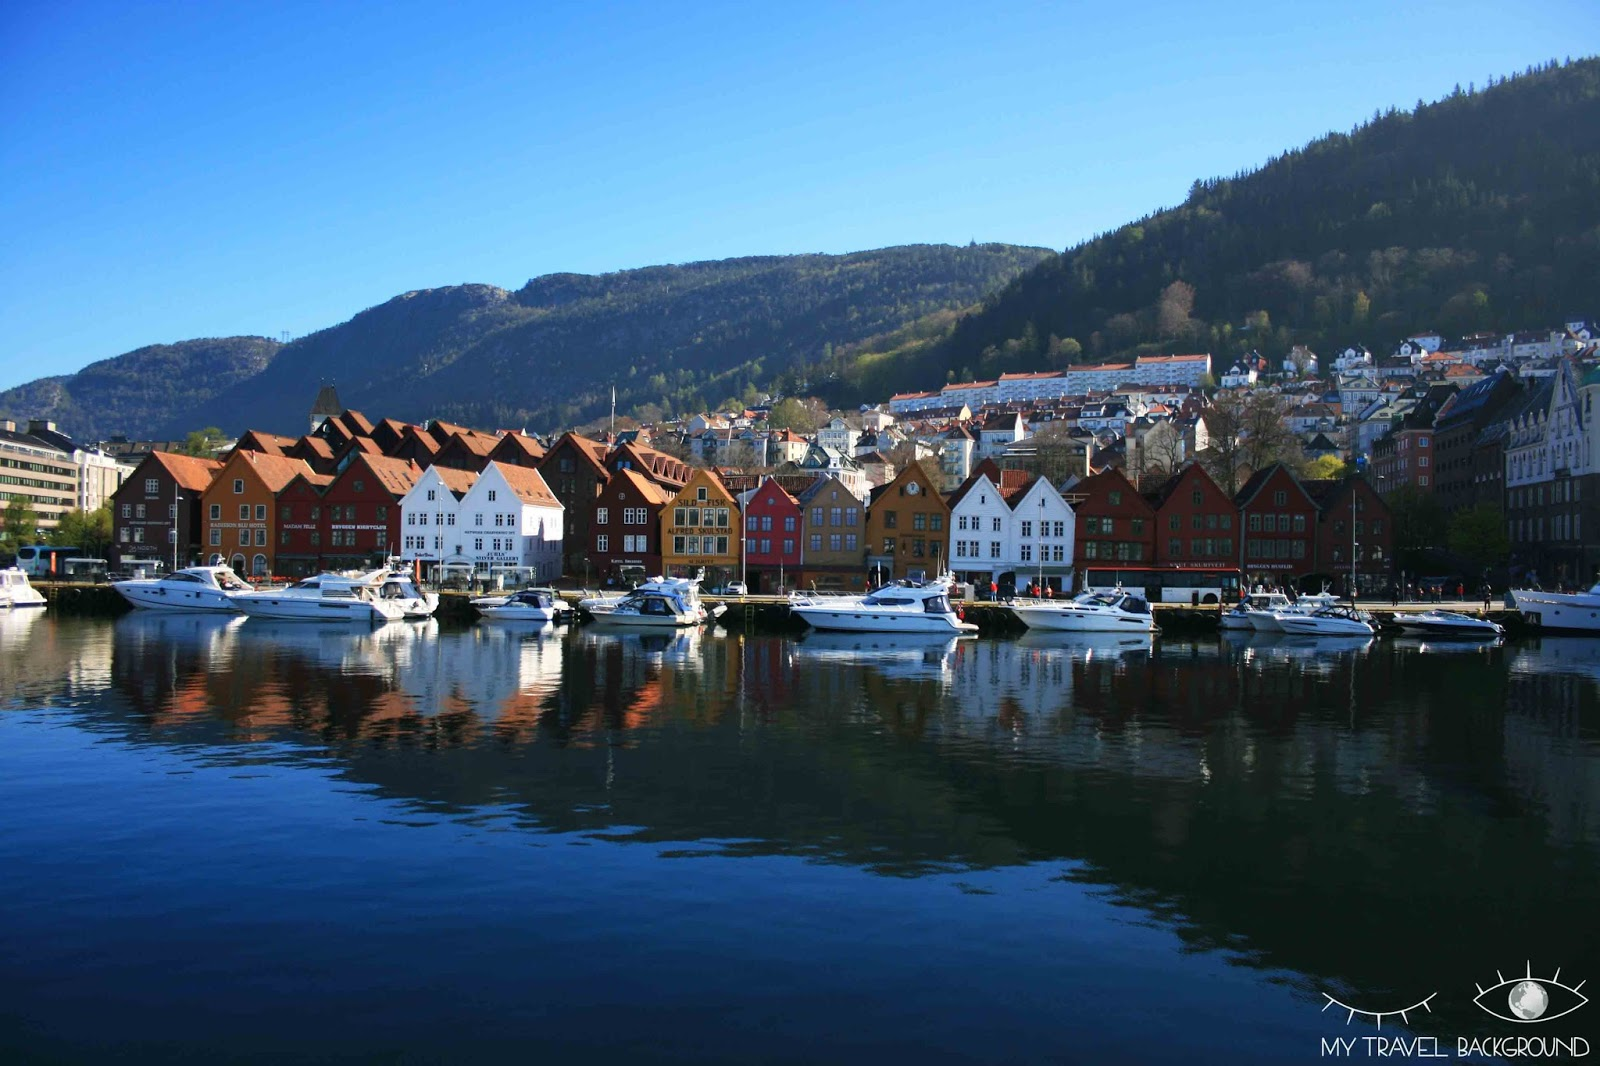 My Travel Background : Cartes Postales de Norvège - Bergen